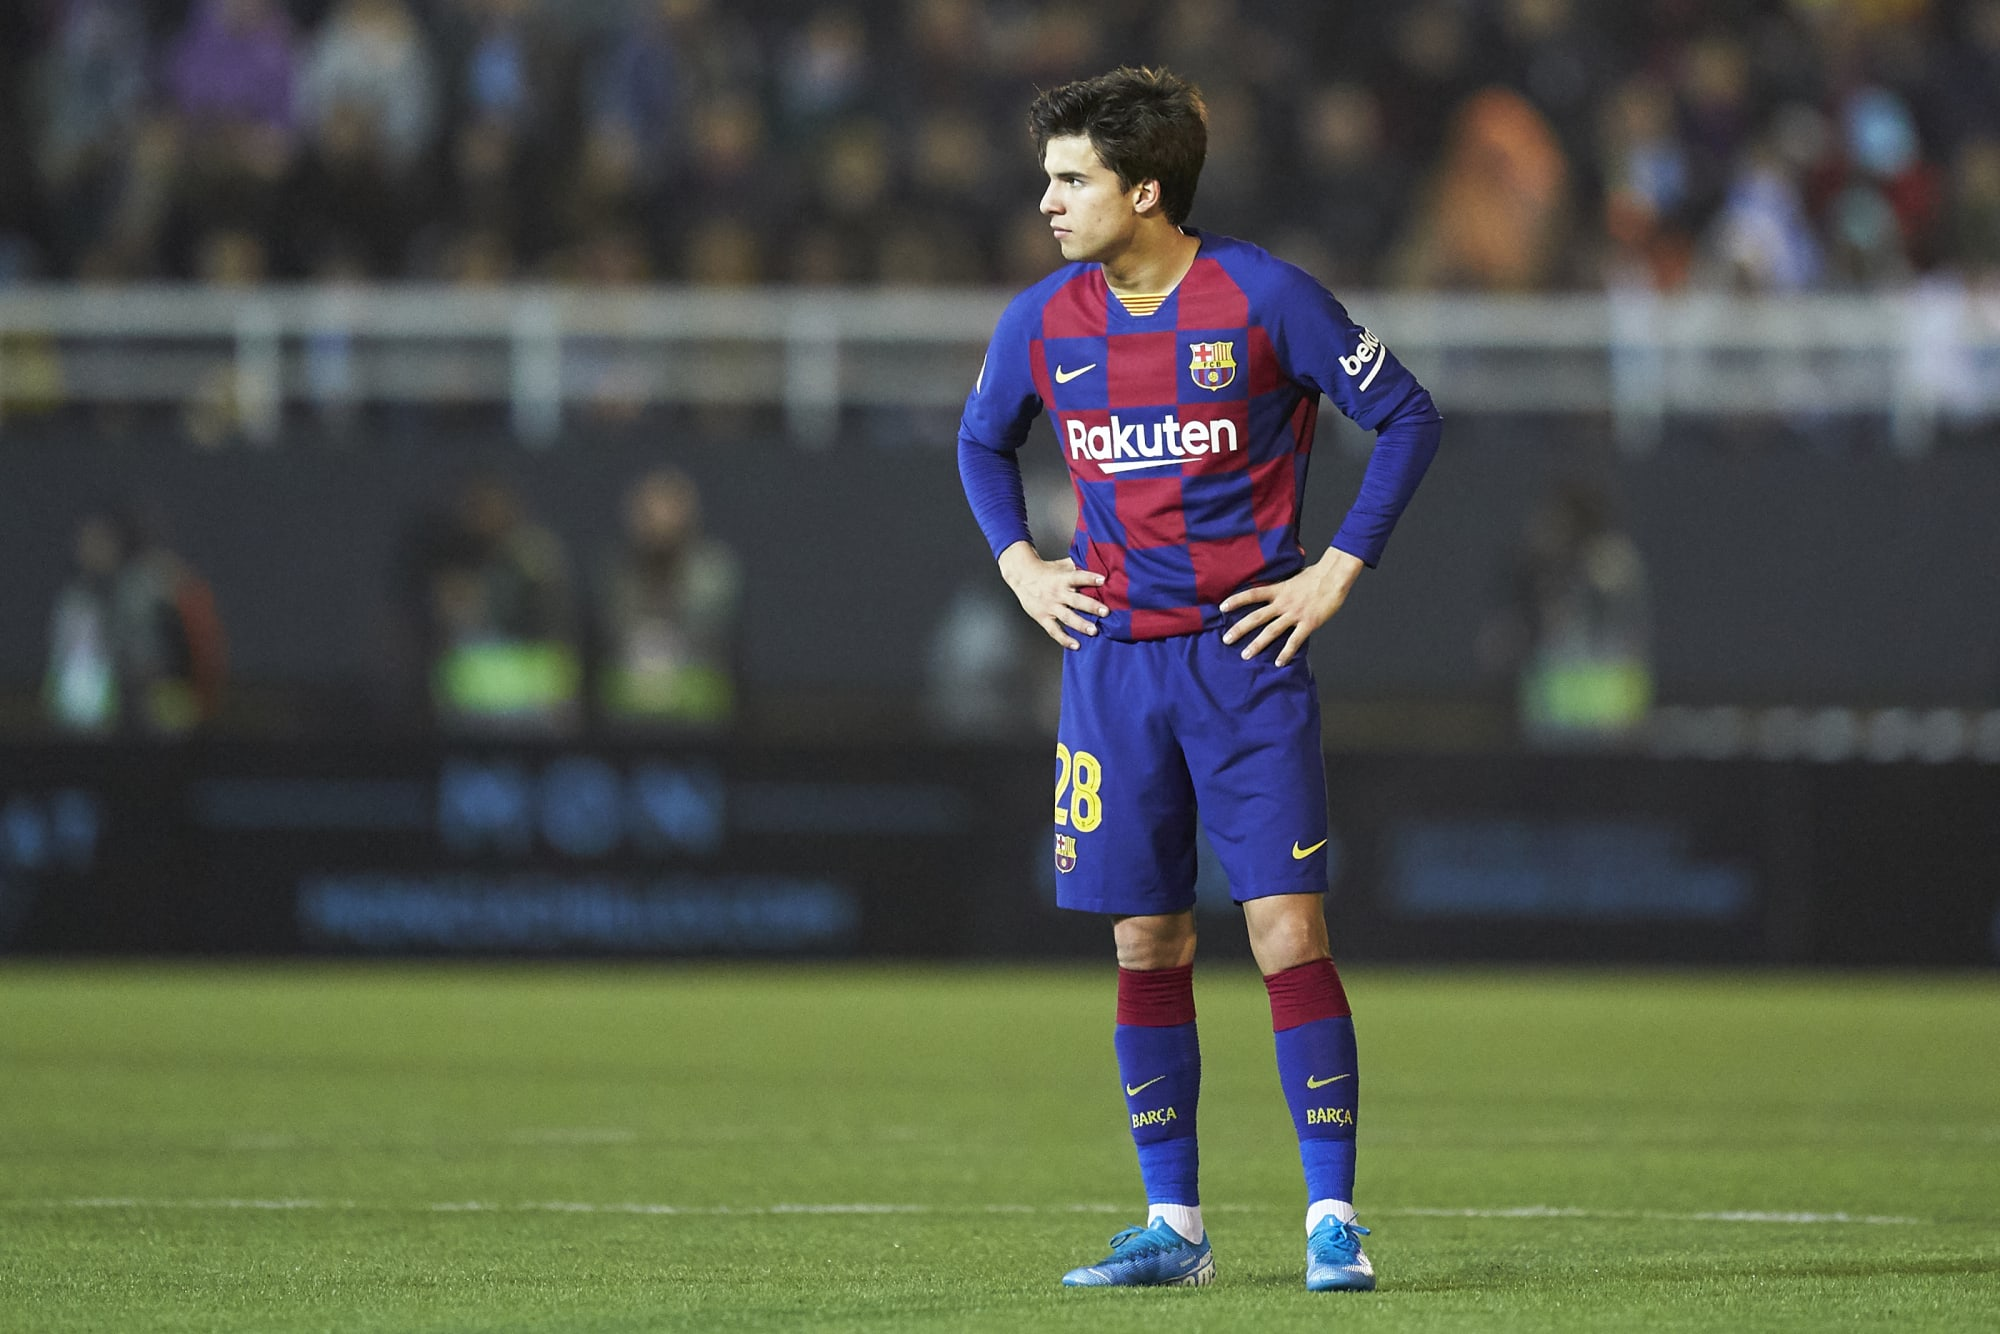 Riqui Puig deservingly desires first-team action after crucial spot-kick